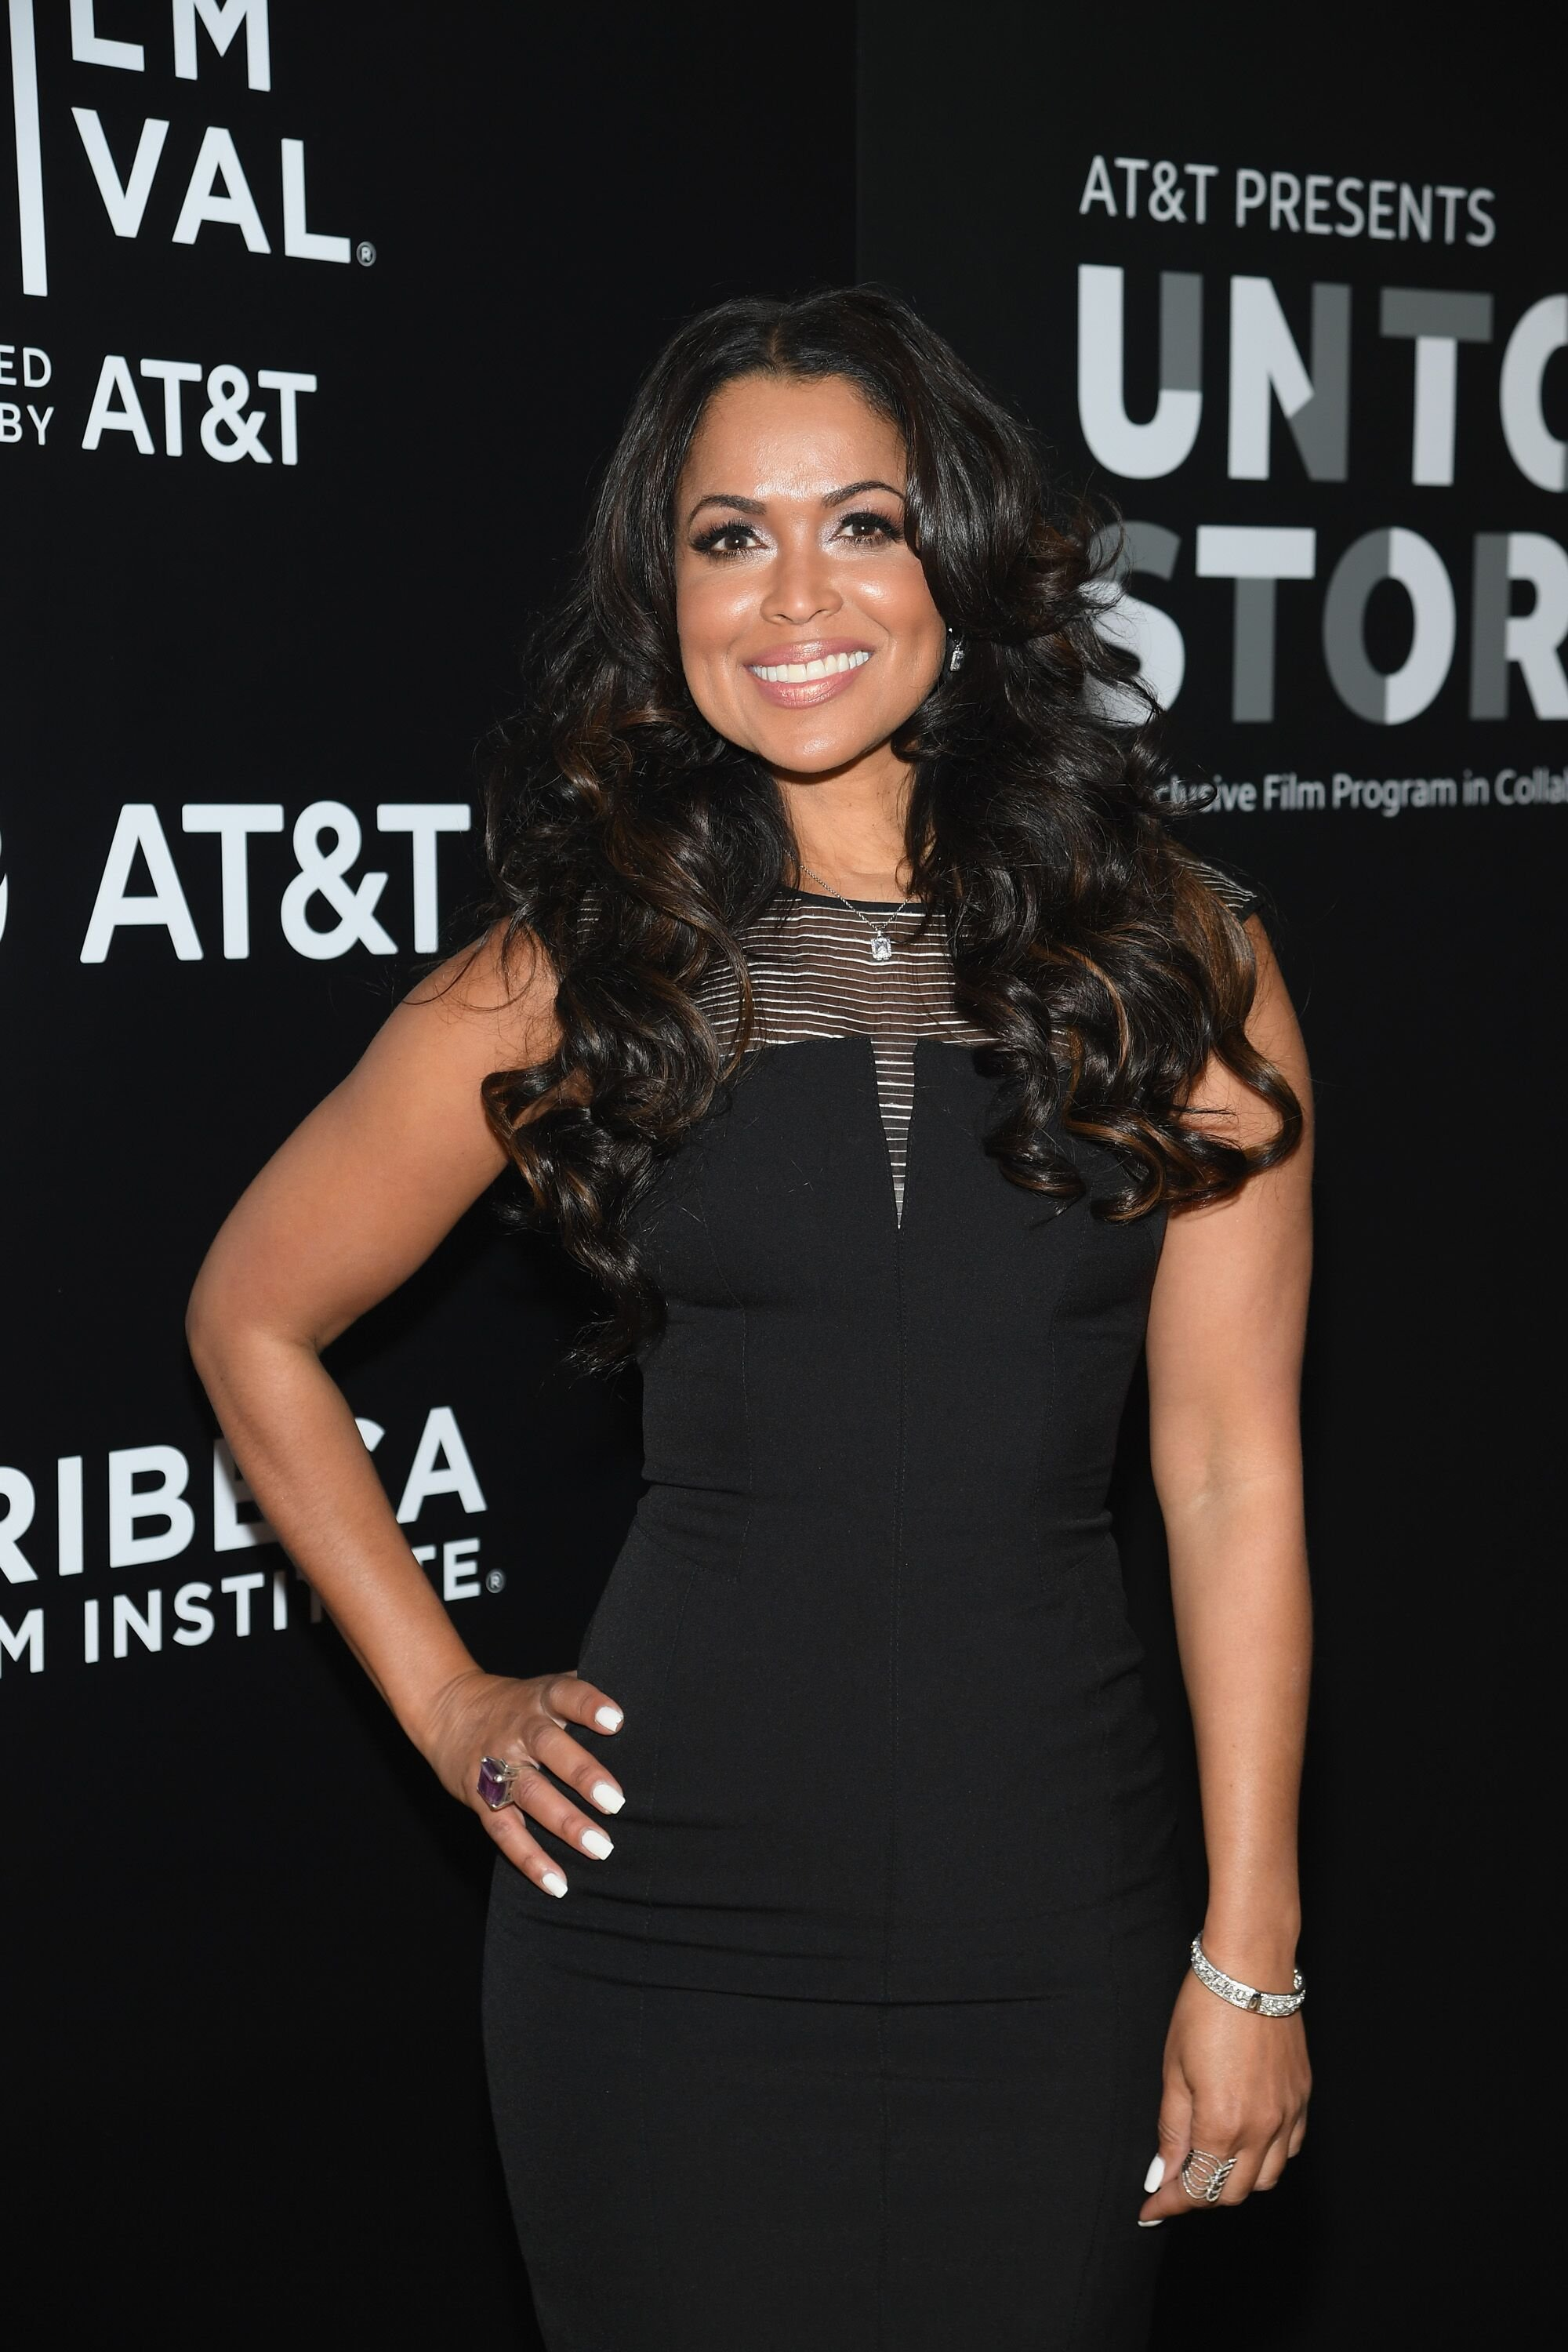 Tracey Edmonds attends as AT&T and Tribeca Host 2nd Annual Luncheon for AT&T Presents: Untold Stories. An Inclusive Film Program in Collaboration with Tribeca at Thalassa on April 11, 2018 in New York City. | Source: Getty Images